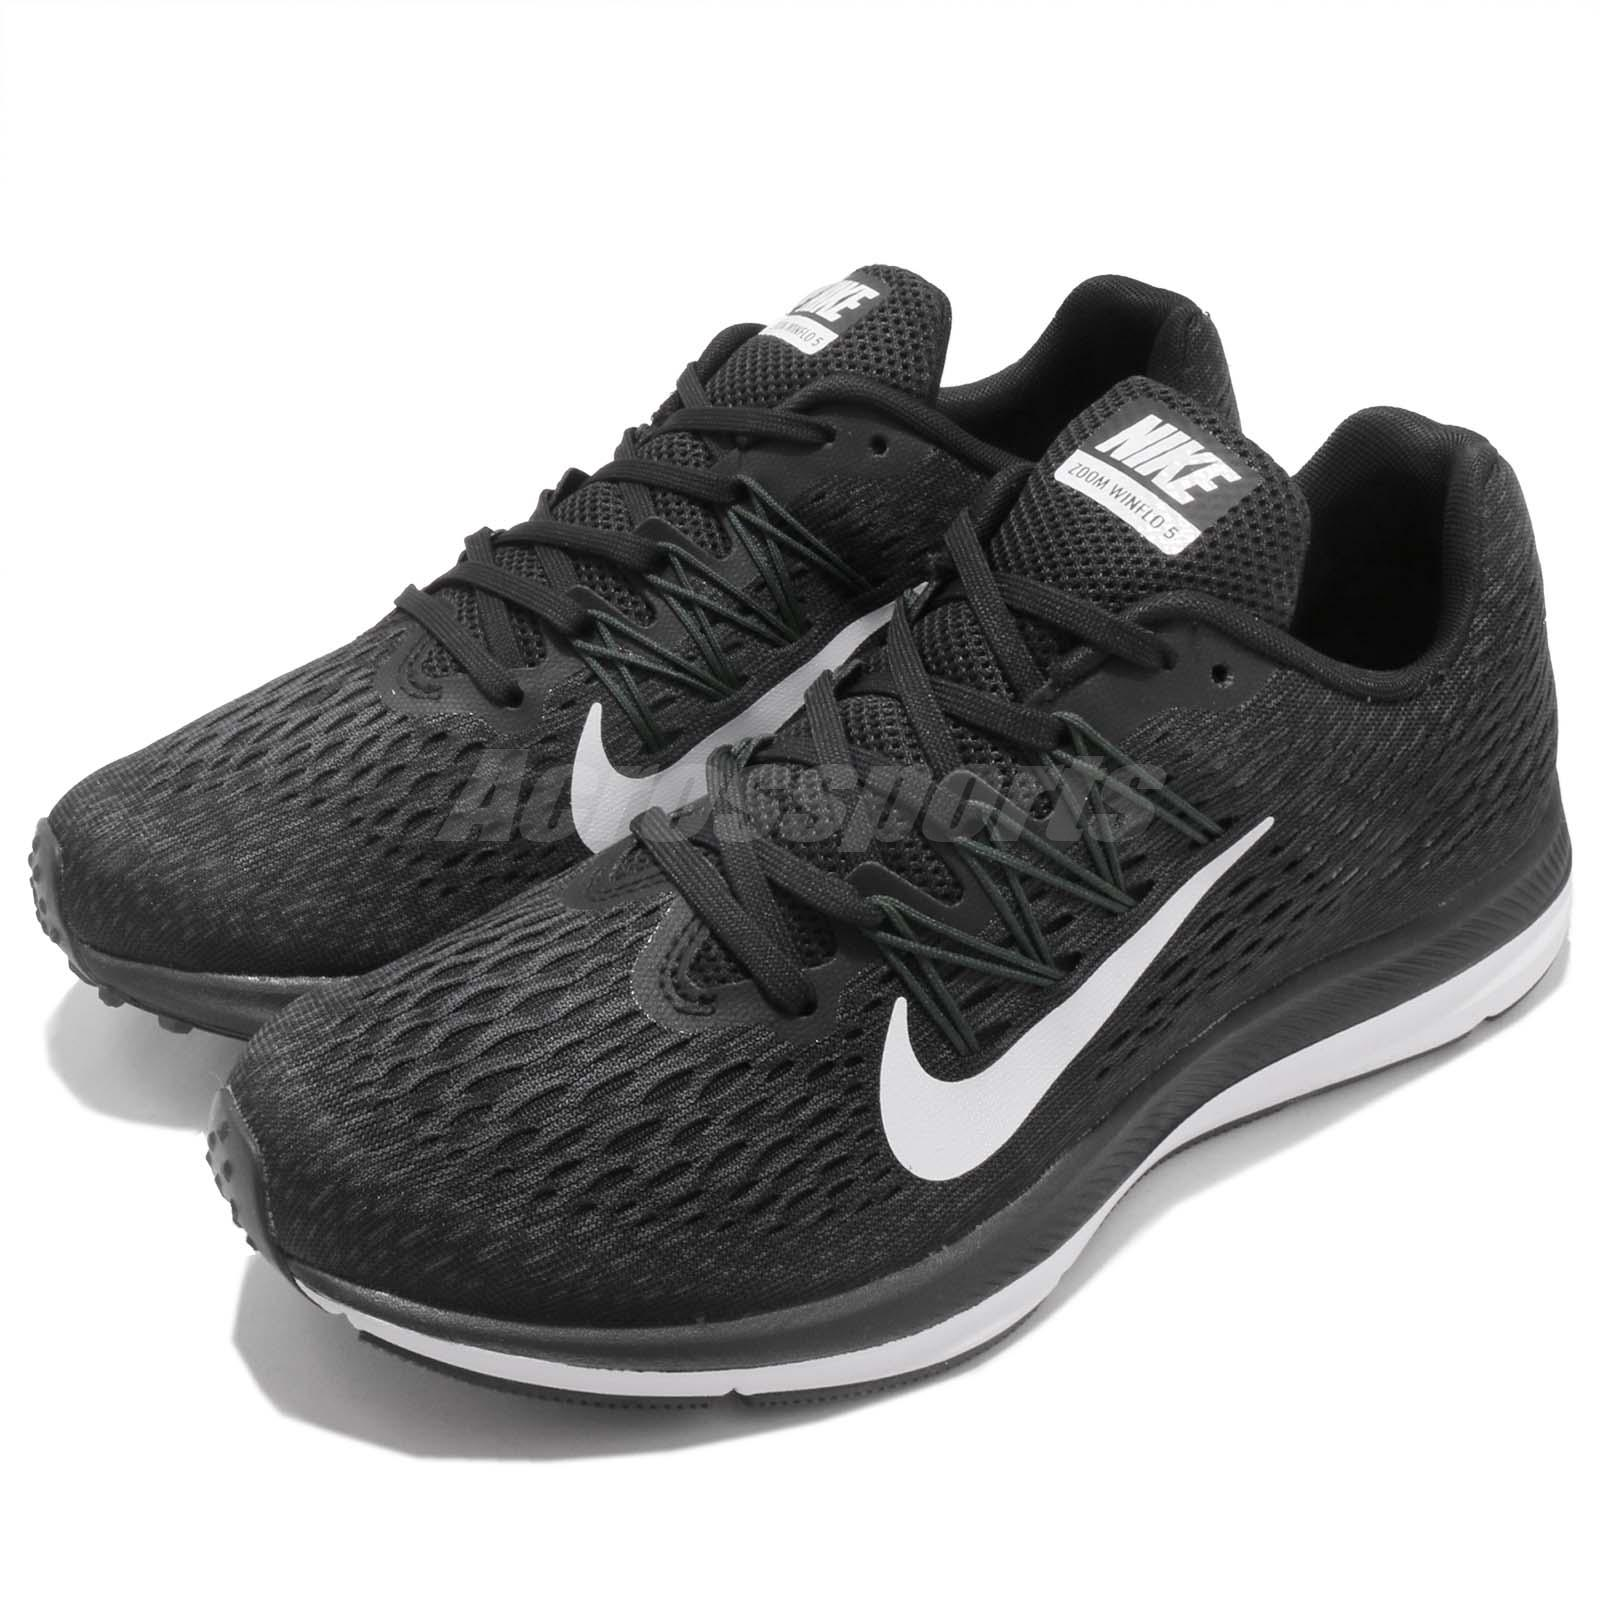 timeless design 7d886 93a5a Details about Nike Wmns Zoom Winflo 5 V Black White Women Running Shoes  Sneakers AA7414-001